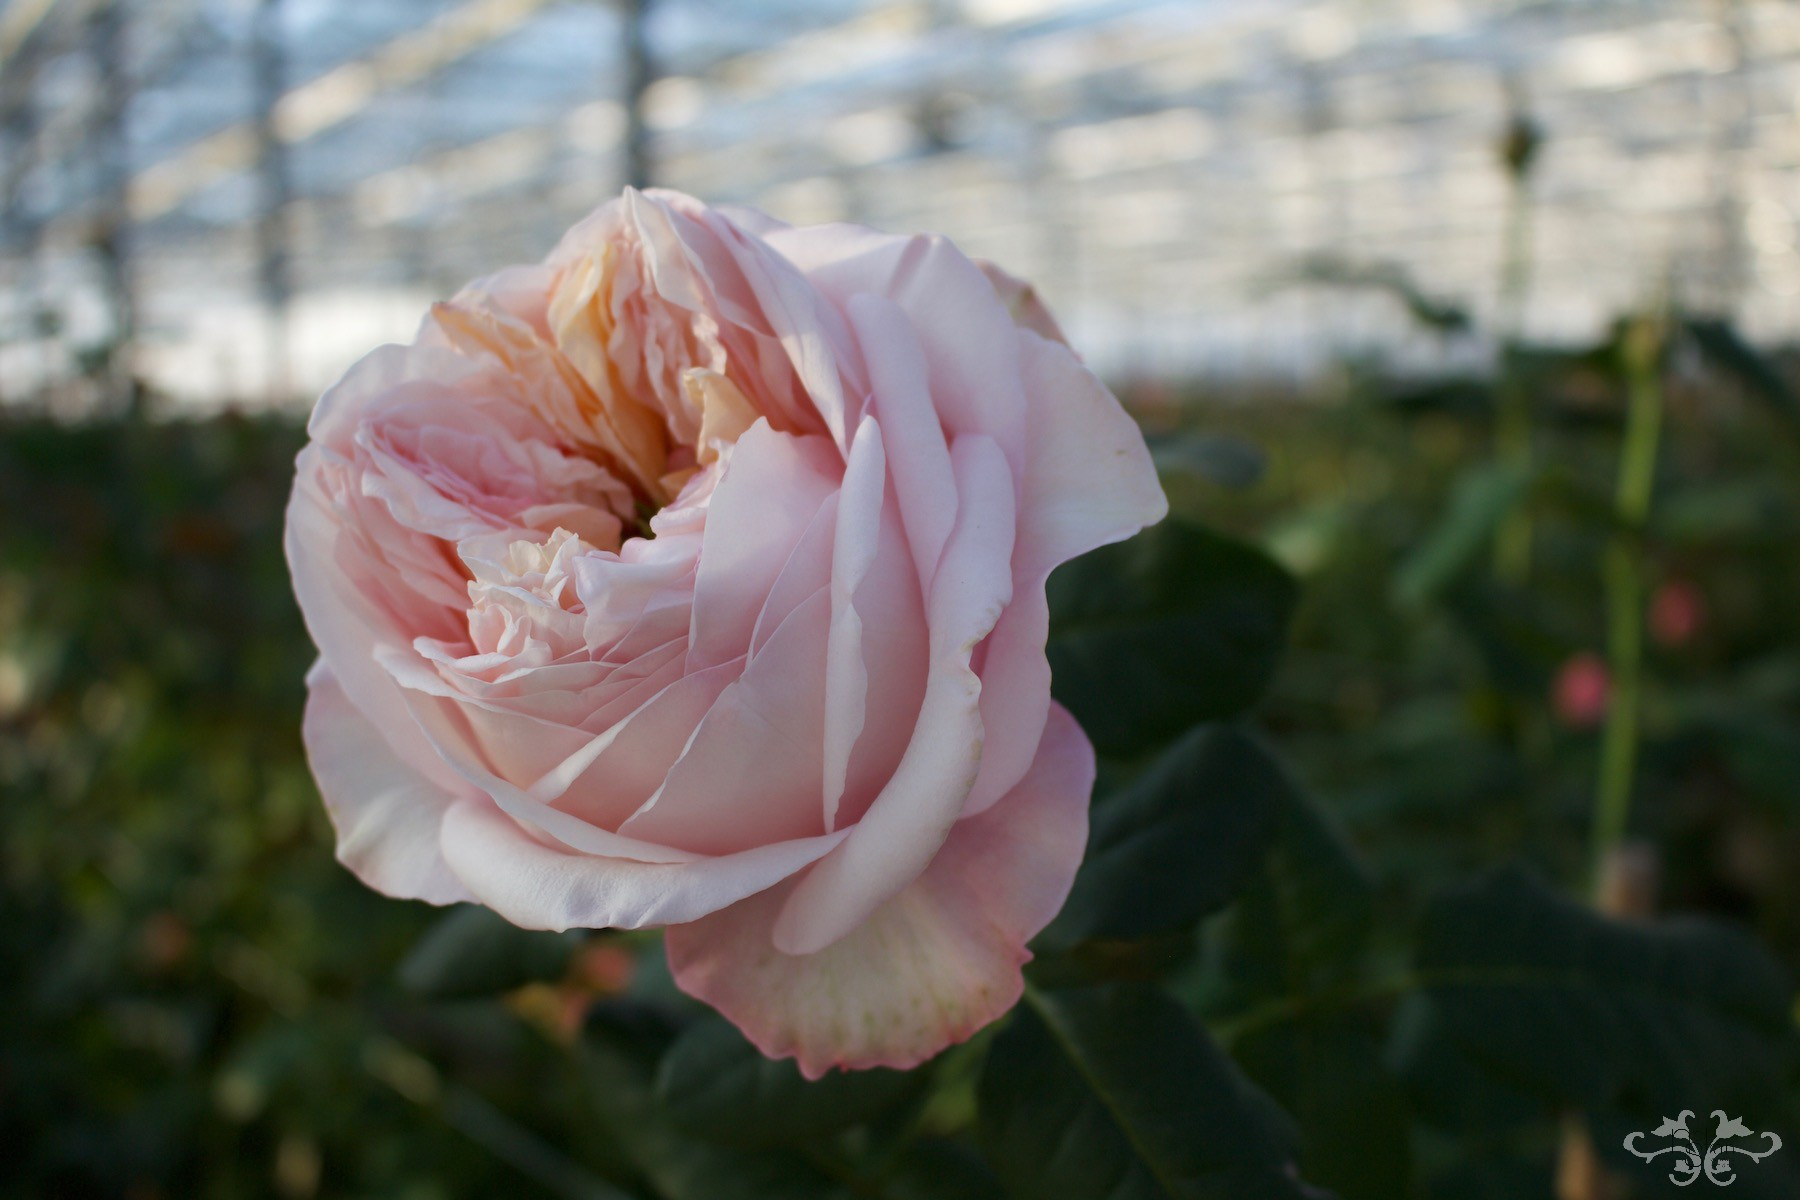 The Nottinghill Rose with its ruffled petals has a 4-piece heart observed best when fully open